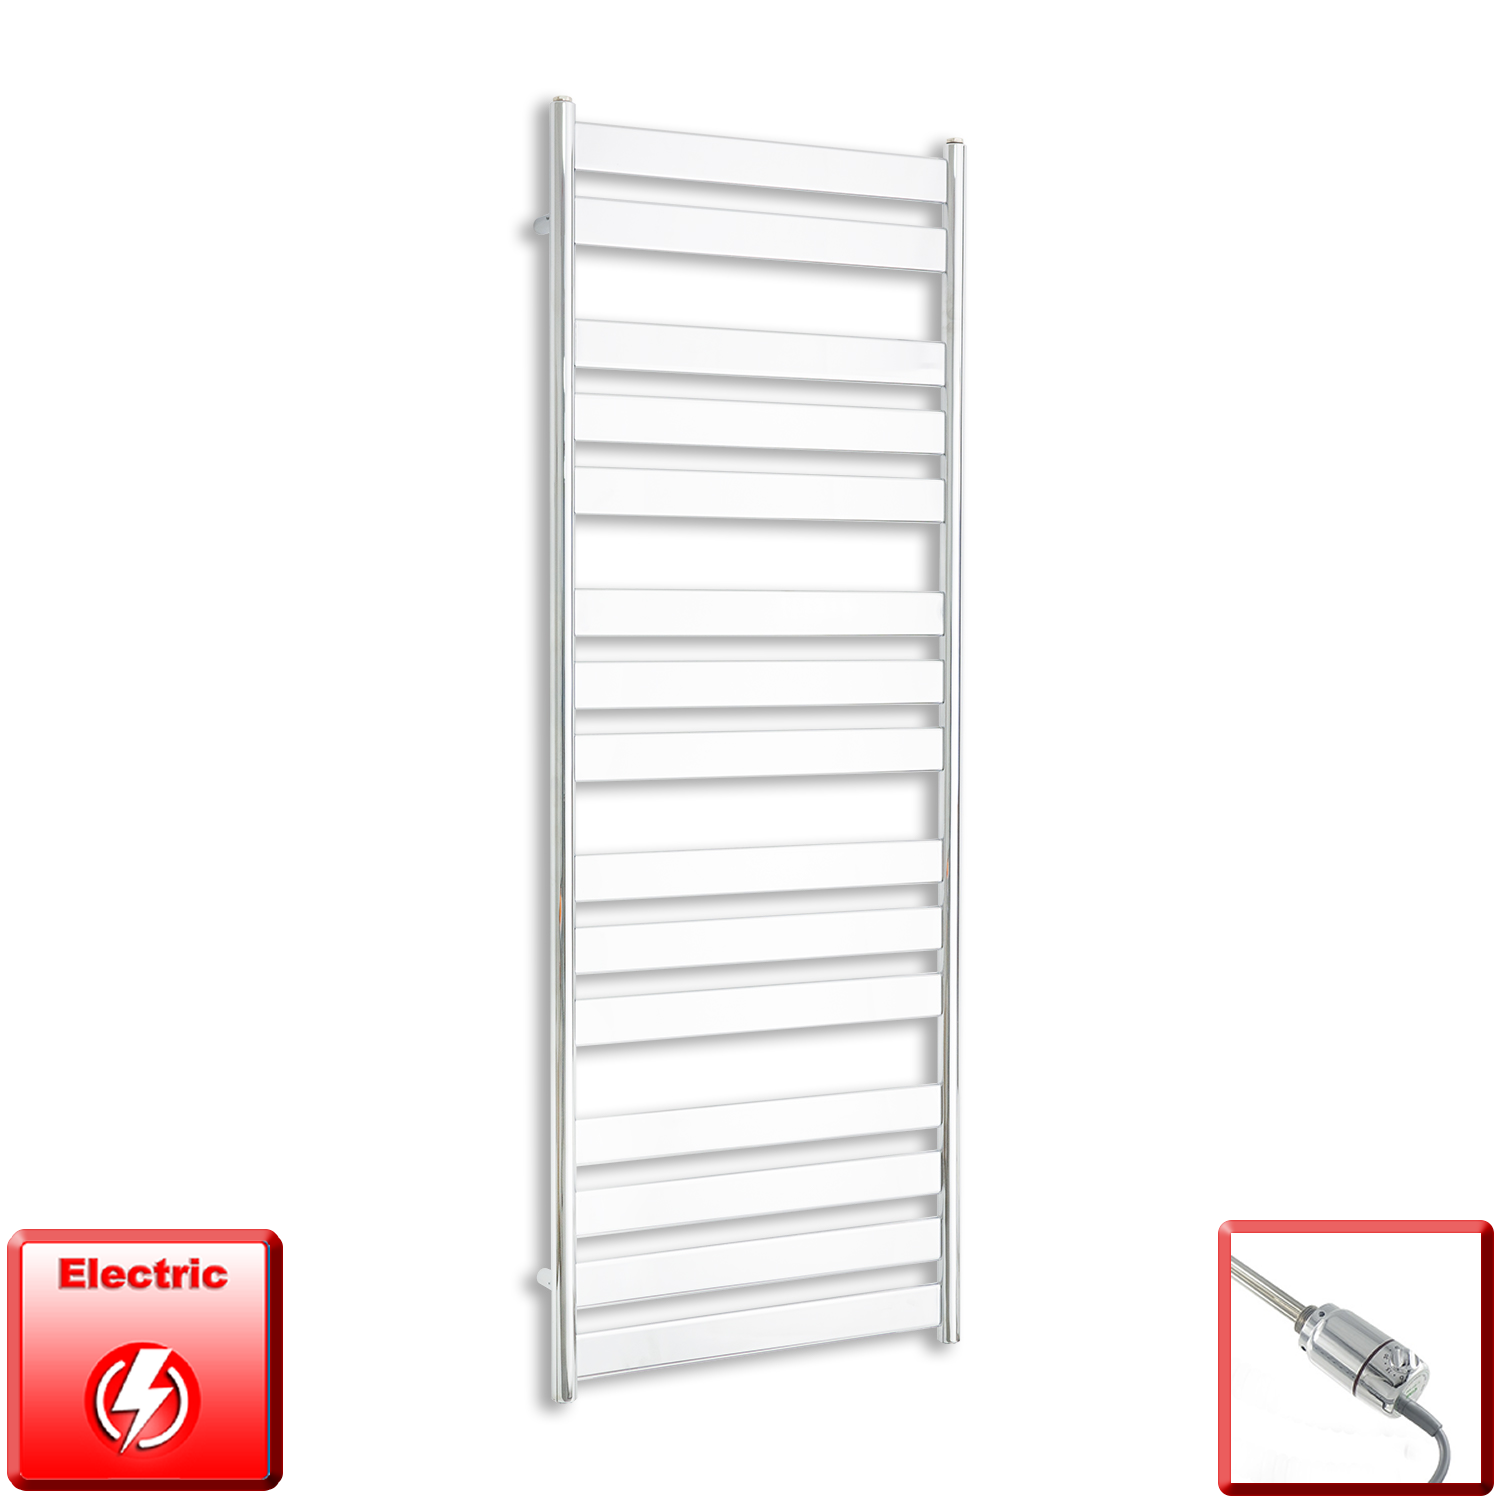 600mm Wide 1600mm High Heated Flat Panel Design Towel Rail Radiator Chrome for Central Heating